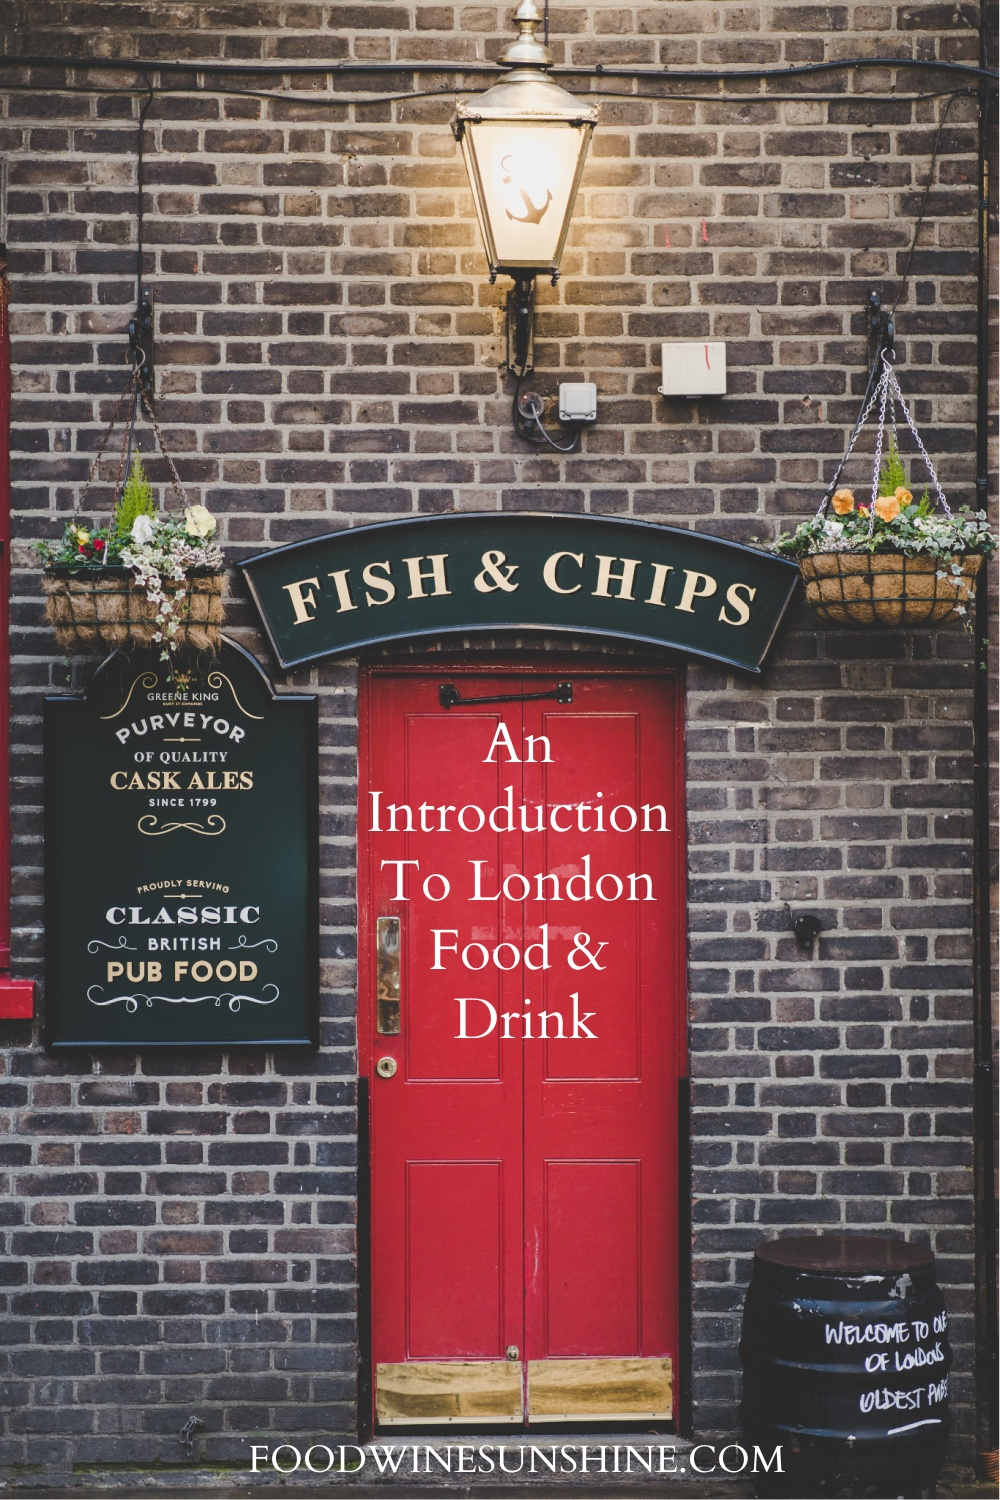 An Introduction To London Food & Drink